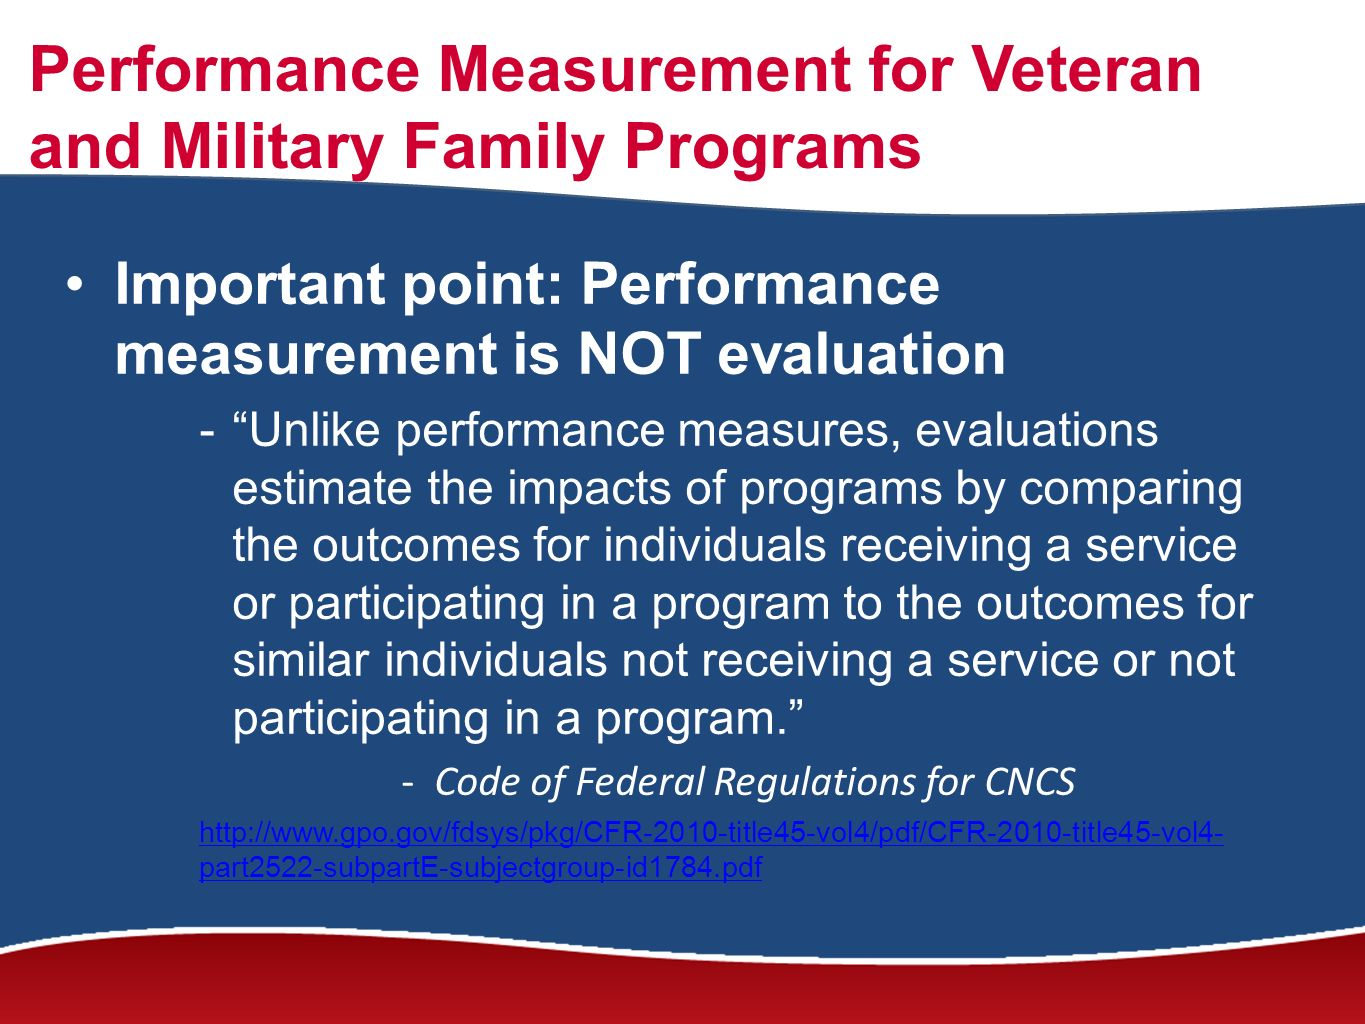 Performance Measurement for Veteran and Military Family Programs Important point: Performance measurement is NOT evaluation -Unlike performance measures, evaluations estimate the impacts of programs by comparing the outcomes for individuals receiving a service or participating in a program to the outcomes for similar individuals not receiving a service or not participating in a program.